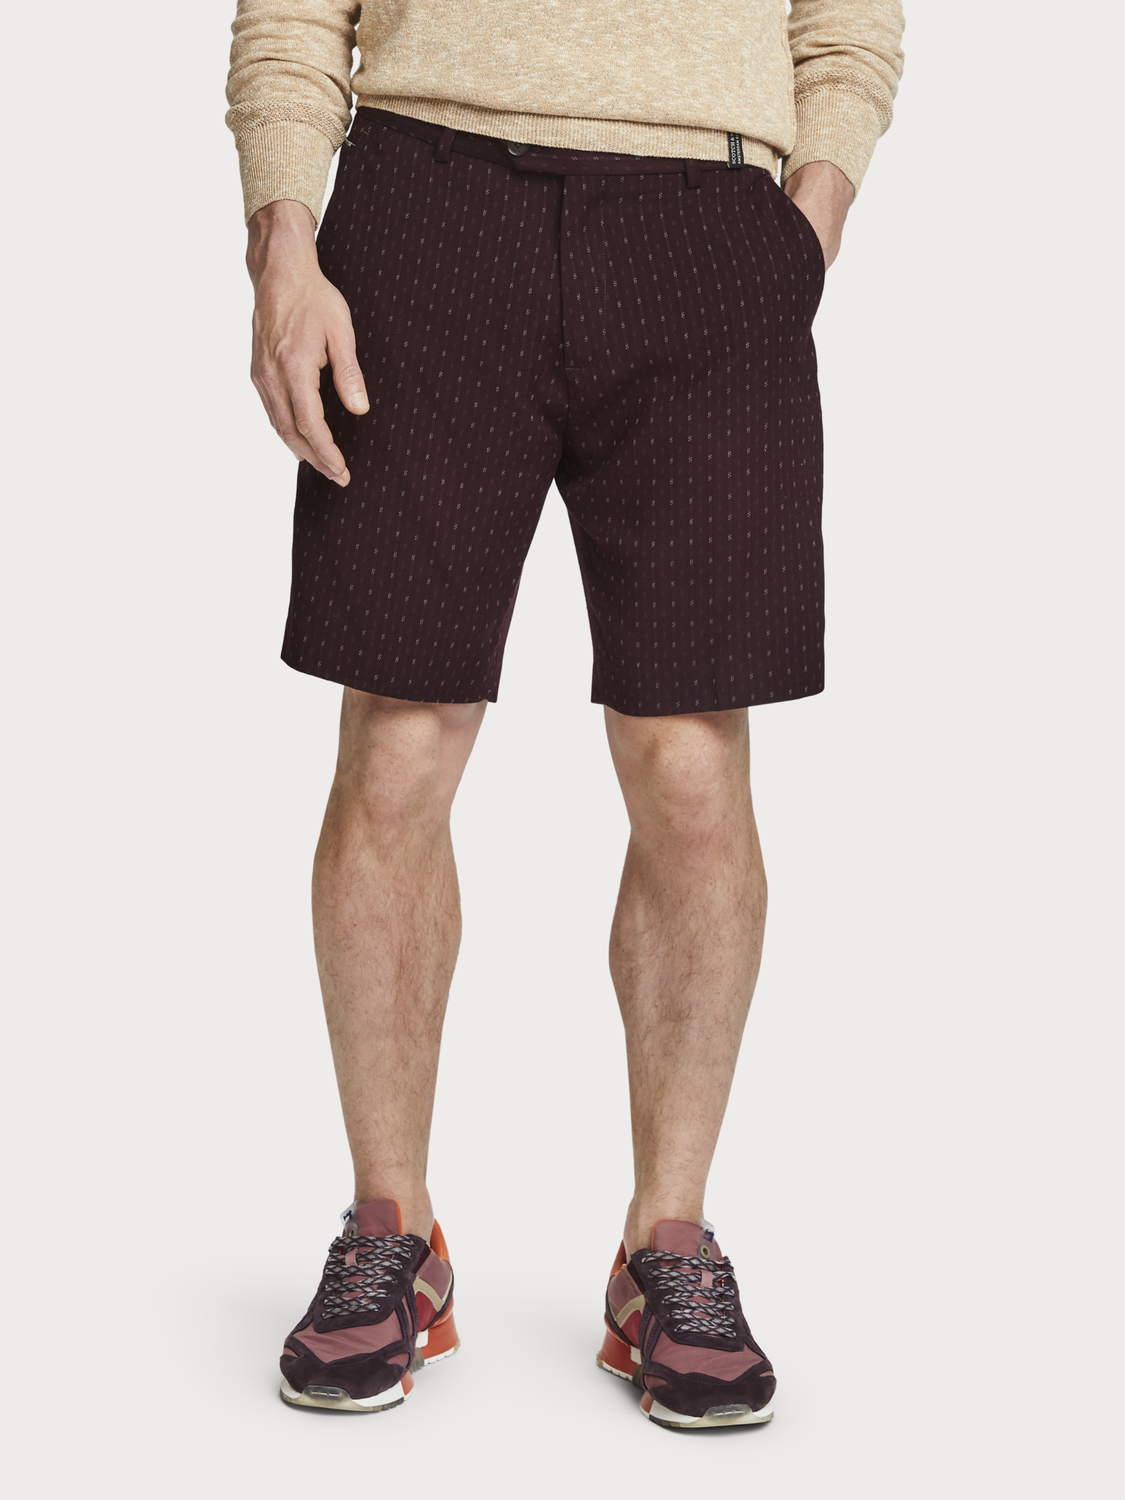 Men Patterned Dress Shorts